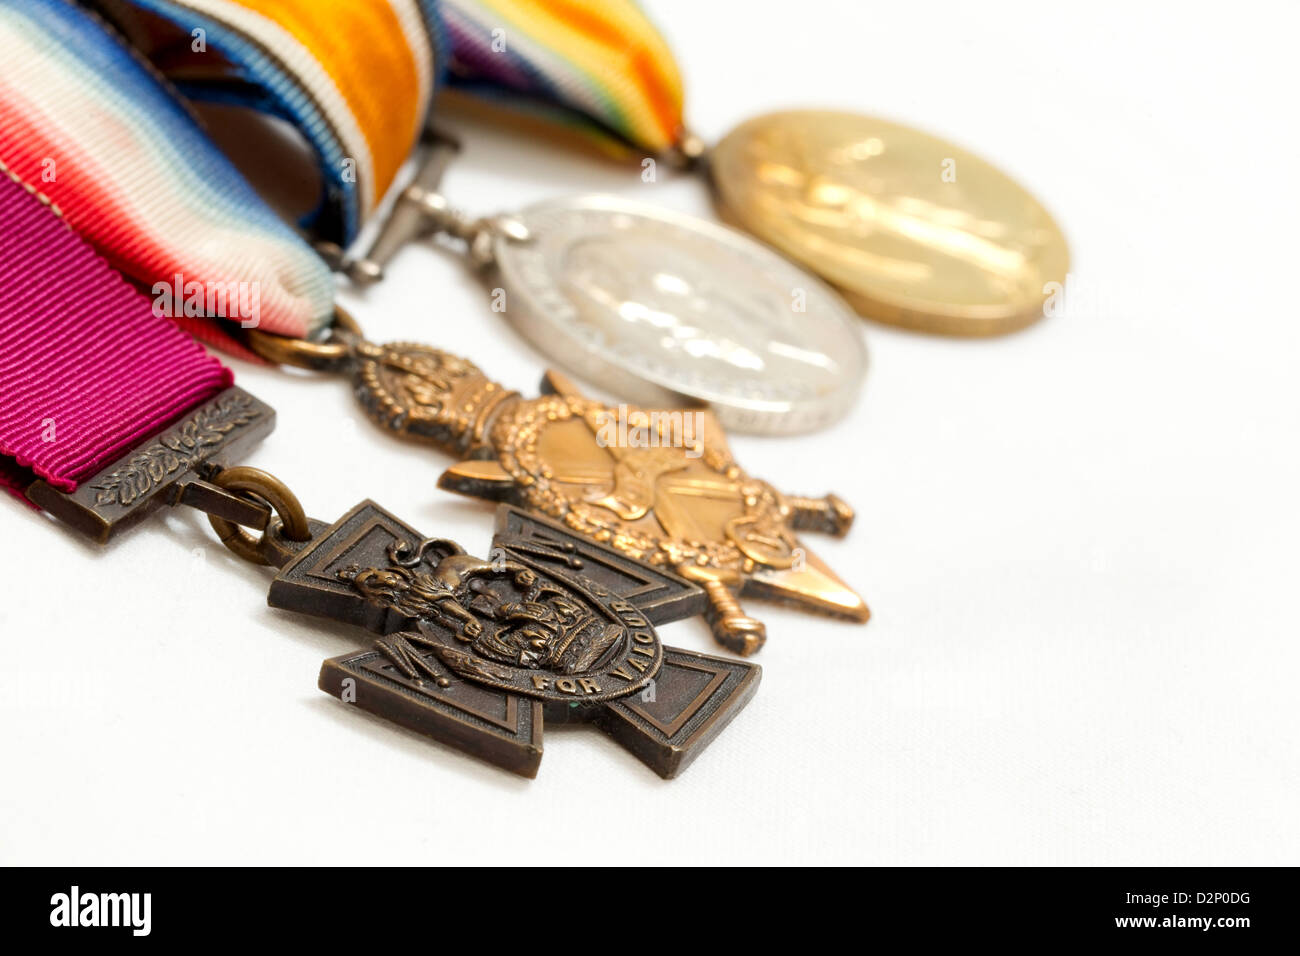 Victoria Cross with other medals - Stock Image